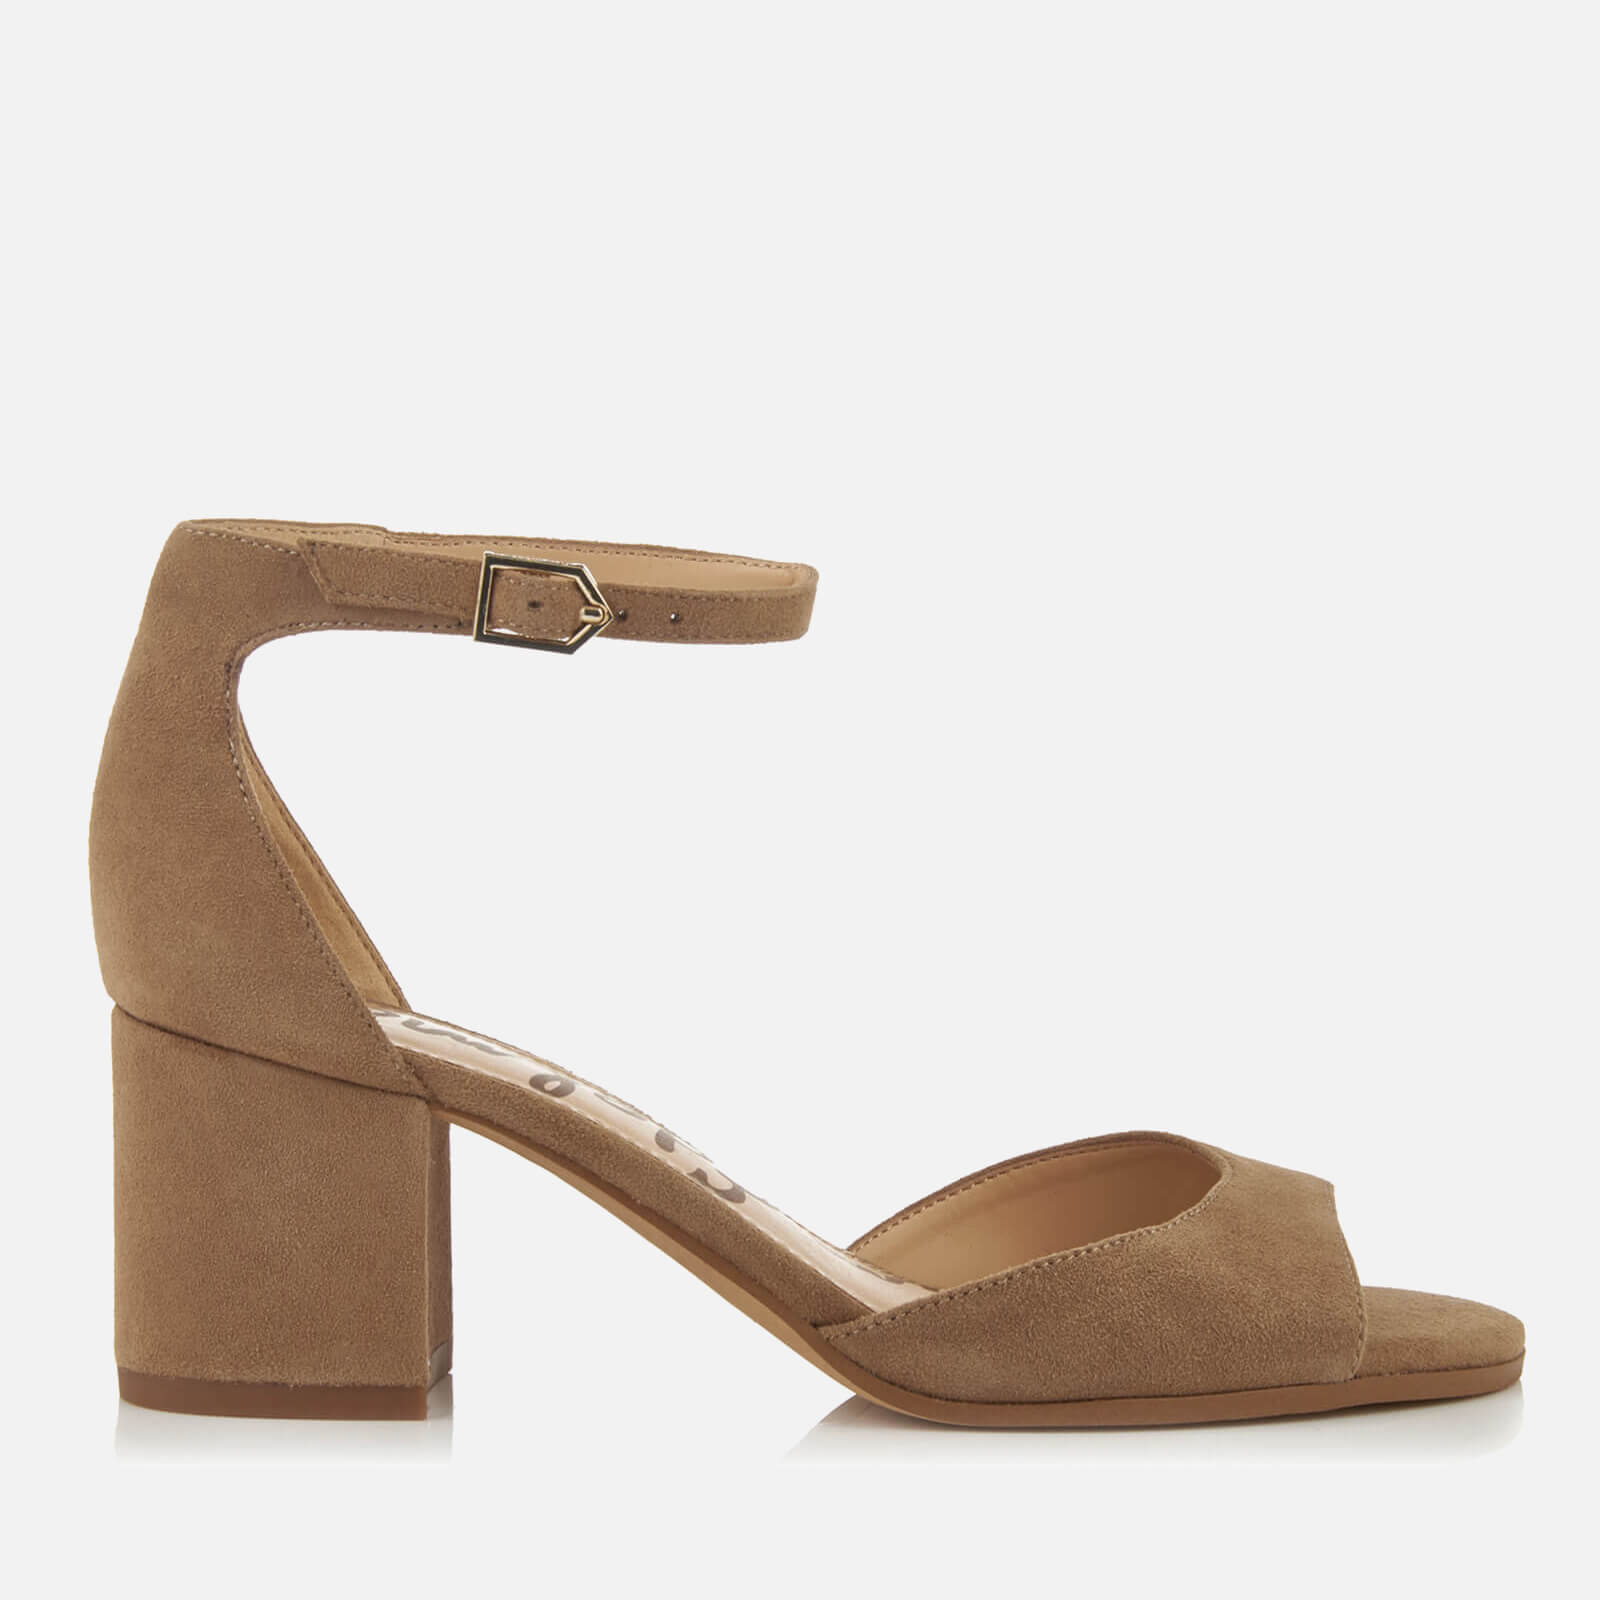 8ba932b5b56c Sam Edelman Women s Susie Suede Blocked Heeled Sandals - Oatmeal - Free UK  Delivery over £50